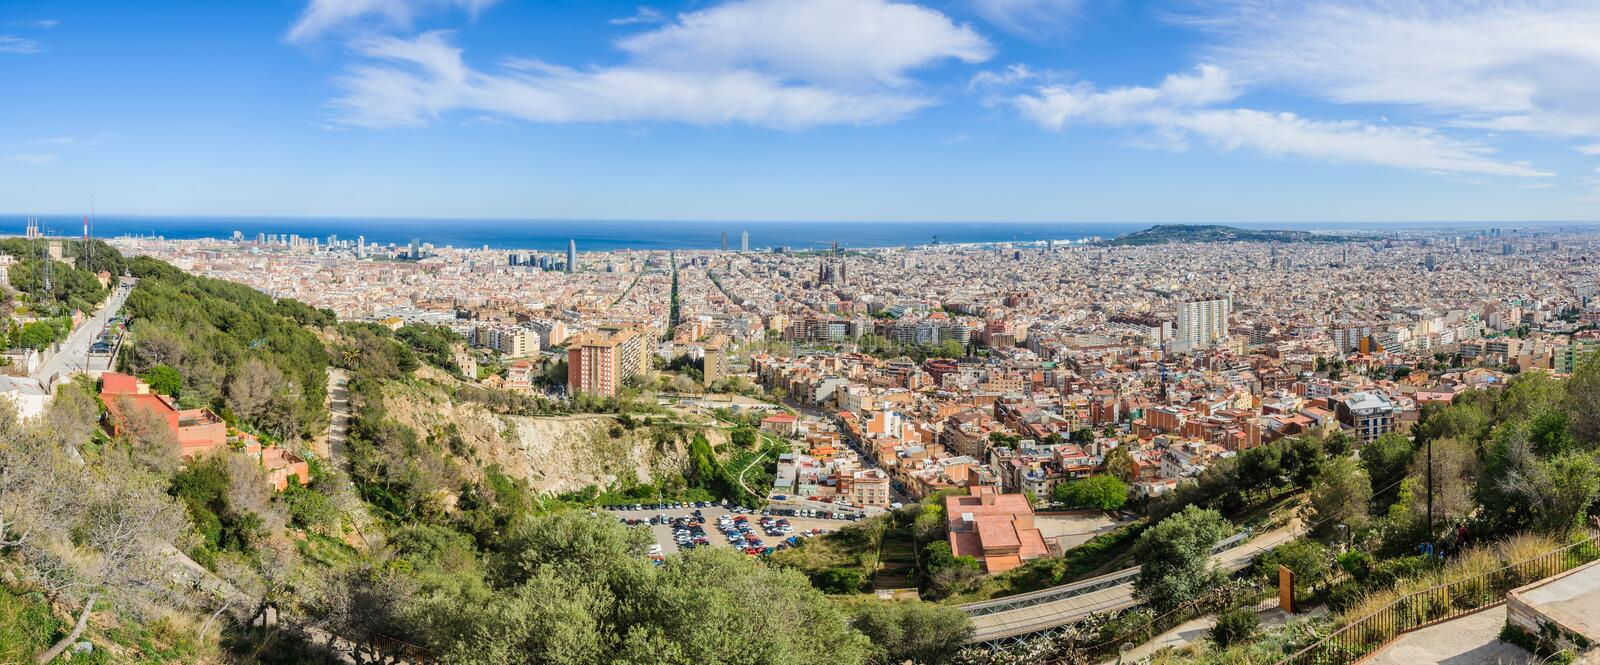 Panoramic view from Turo del Rovira in Barcelona, Spain. The skyline of Barcelona from the hill of Turo del Rovira in Barcelona, Catalonia, Spain royalty free stock image